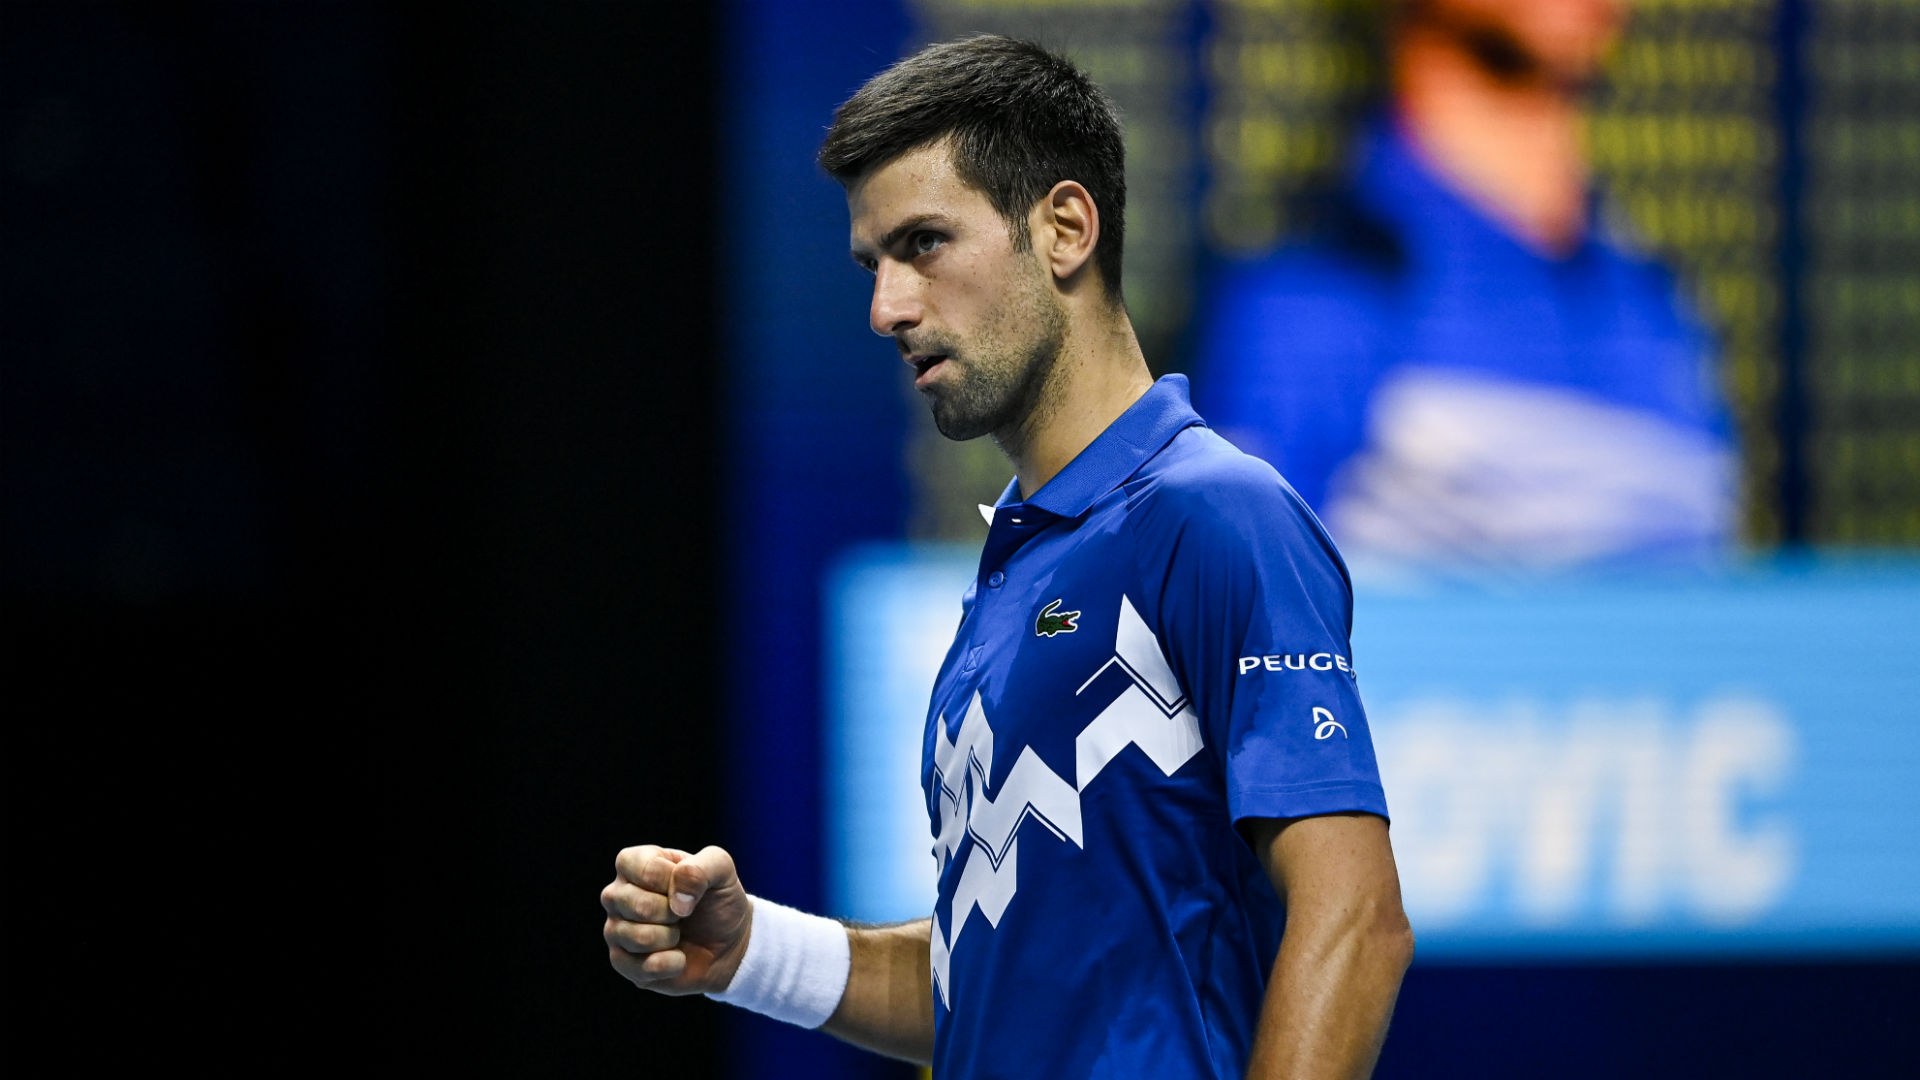 ATP Finals: Djokovic wary of threat posed by Thiem